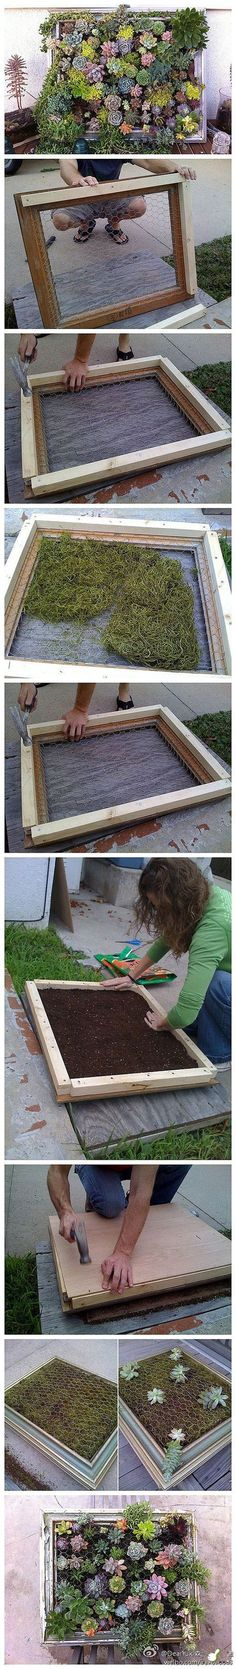 Succulent frame... been trying to figure out something cool to hang on the fence. These could be fun :) - Garden Chic